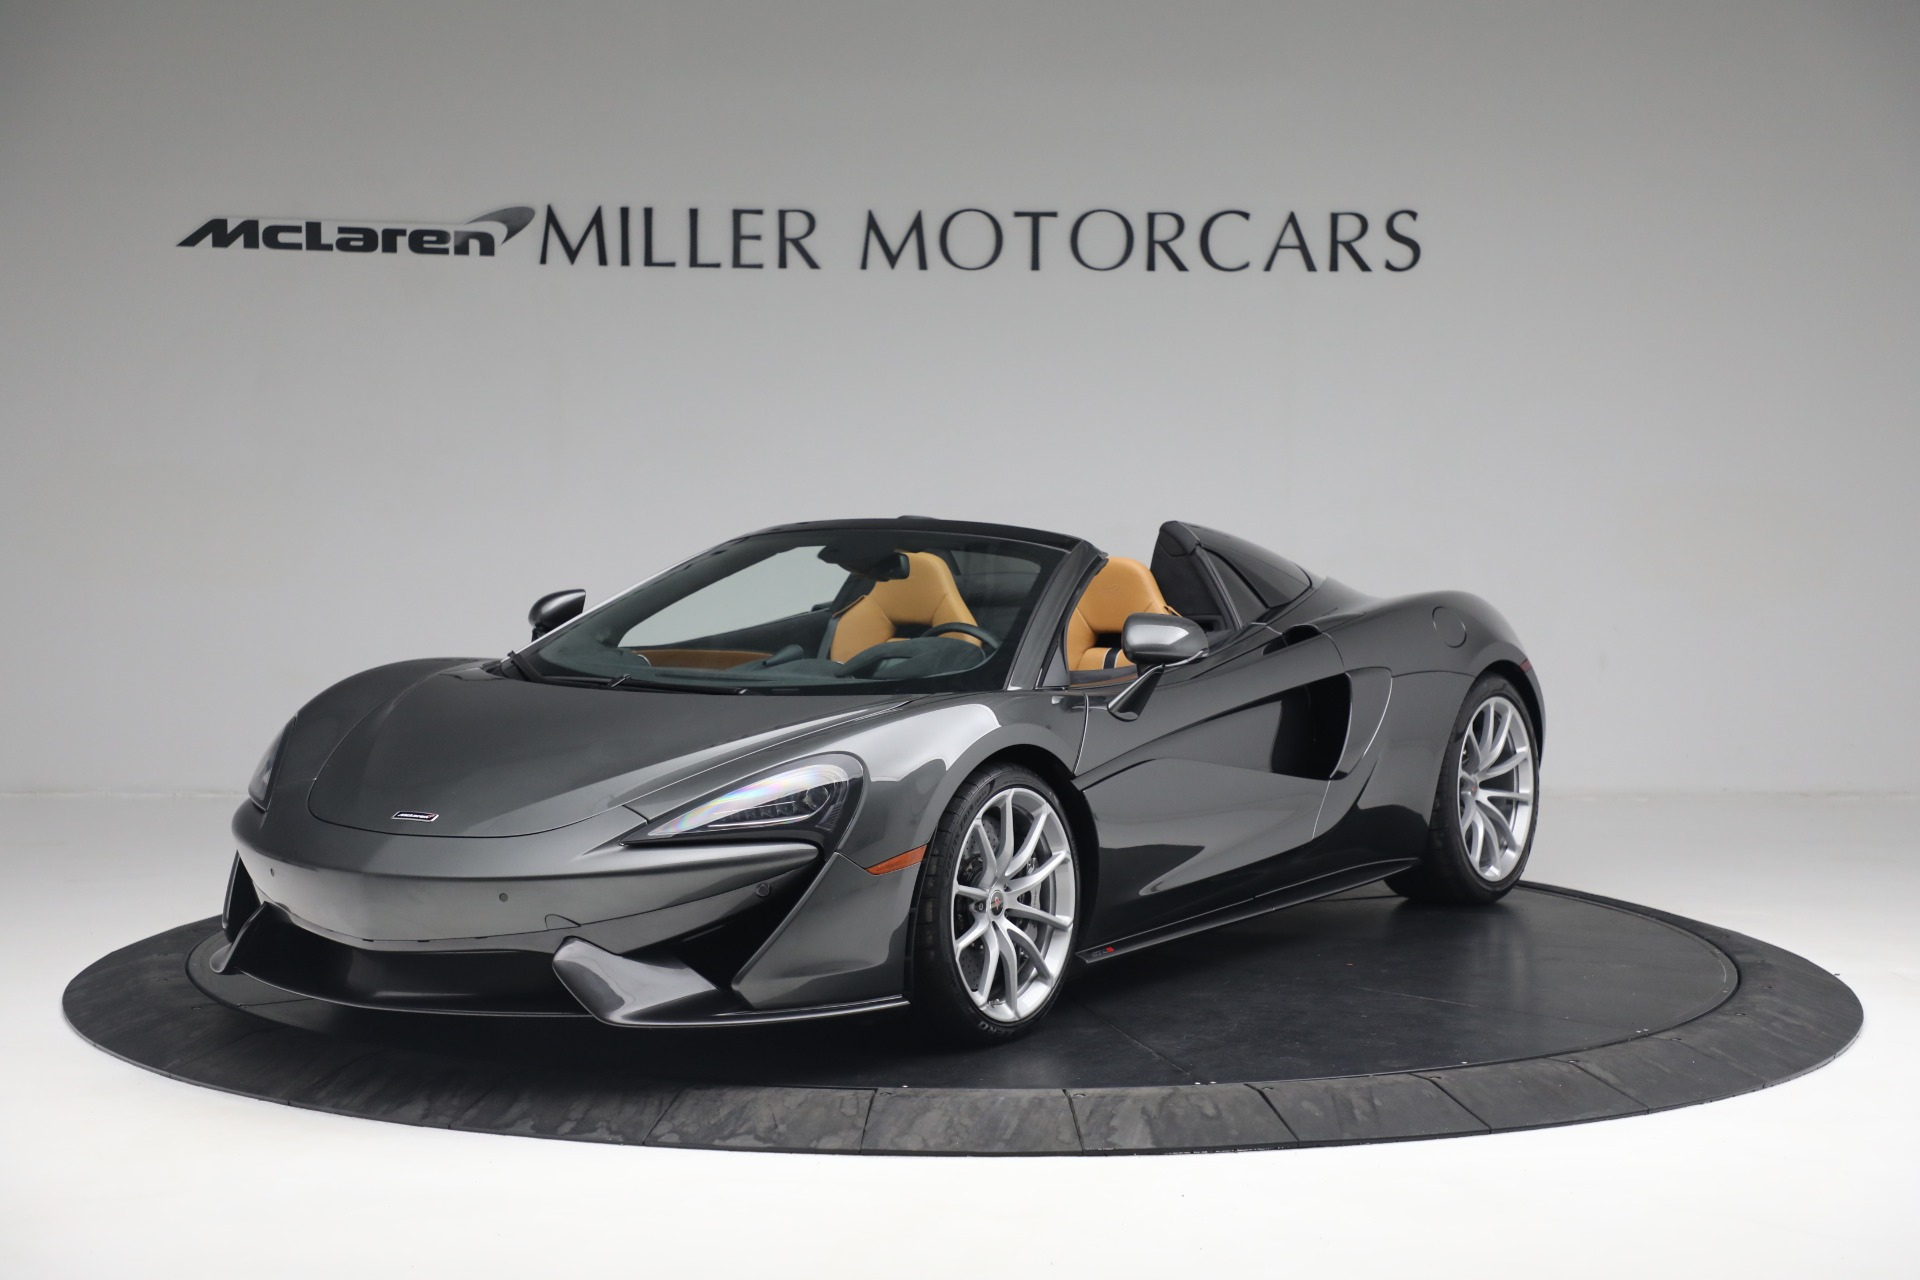 Used 2018 McLaren 570S Spider for sale Sold at Bugatti of Greenwich in Greenwich CT 06830 1